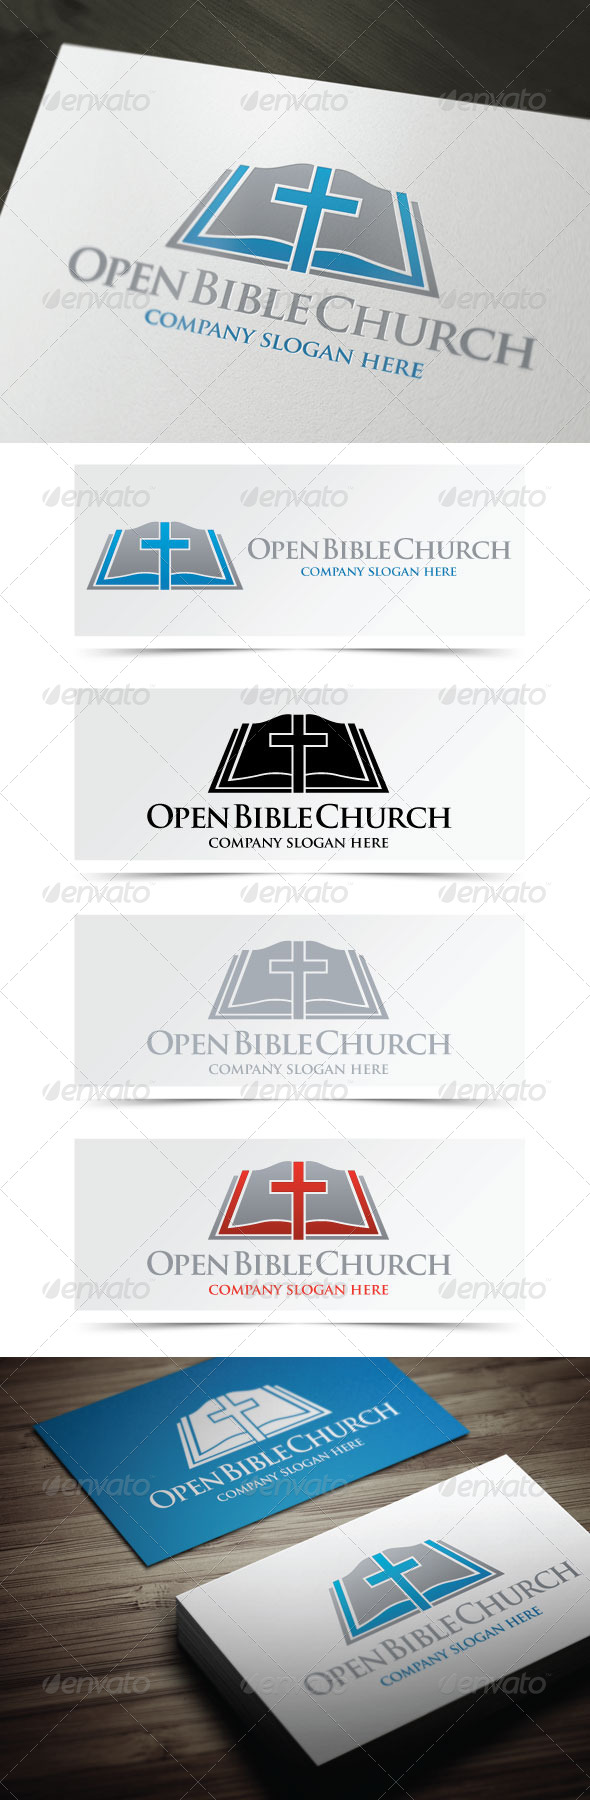 Open Bible Church - Objects Logo Templates